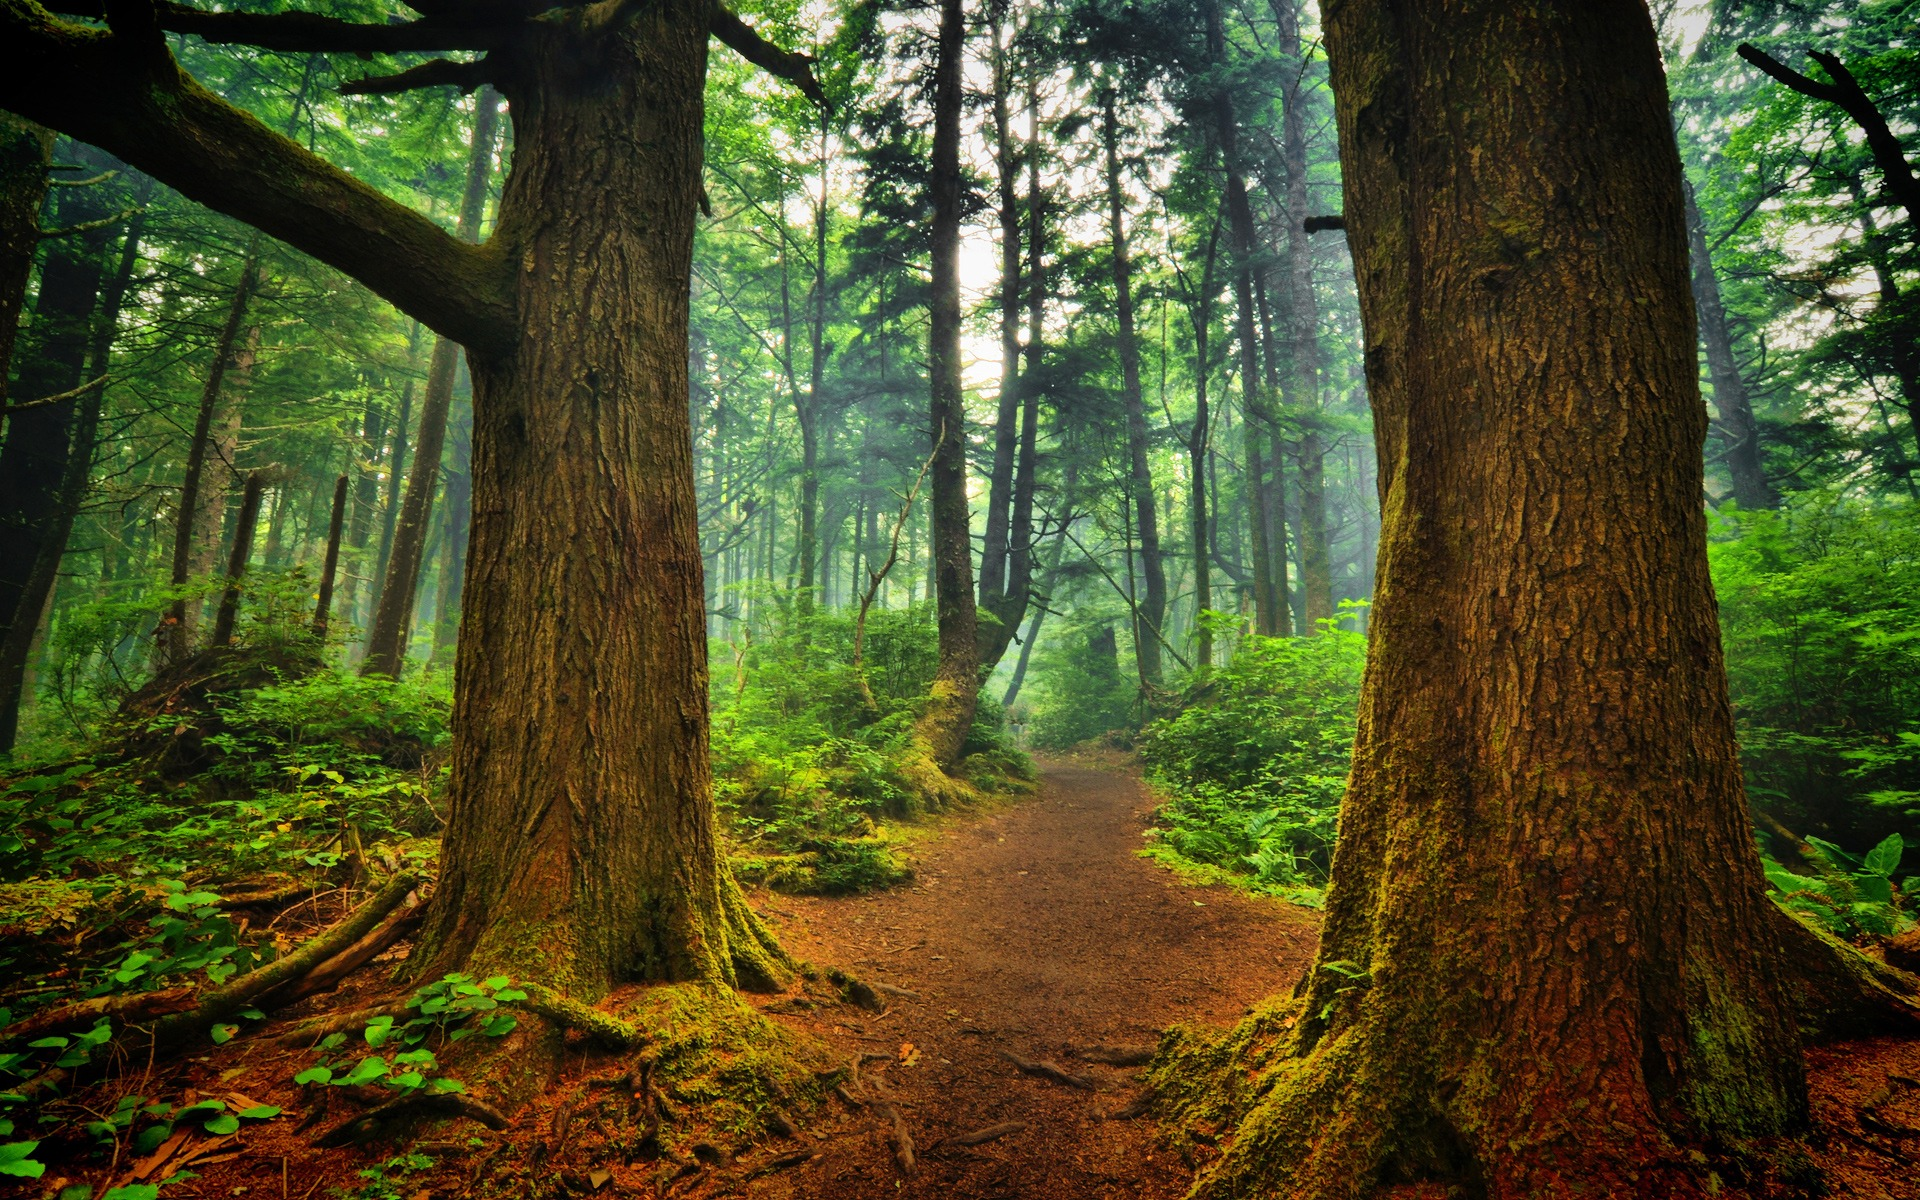 Forest Hd Nature Wallpaper